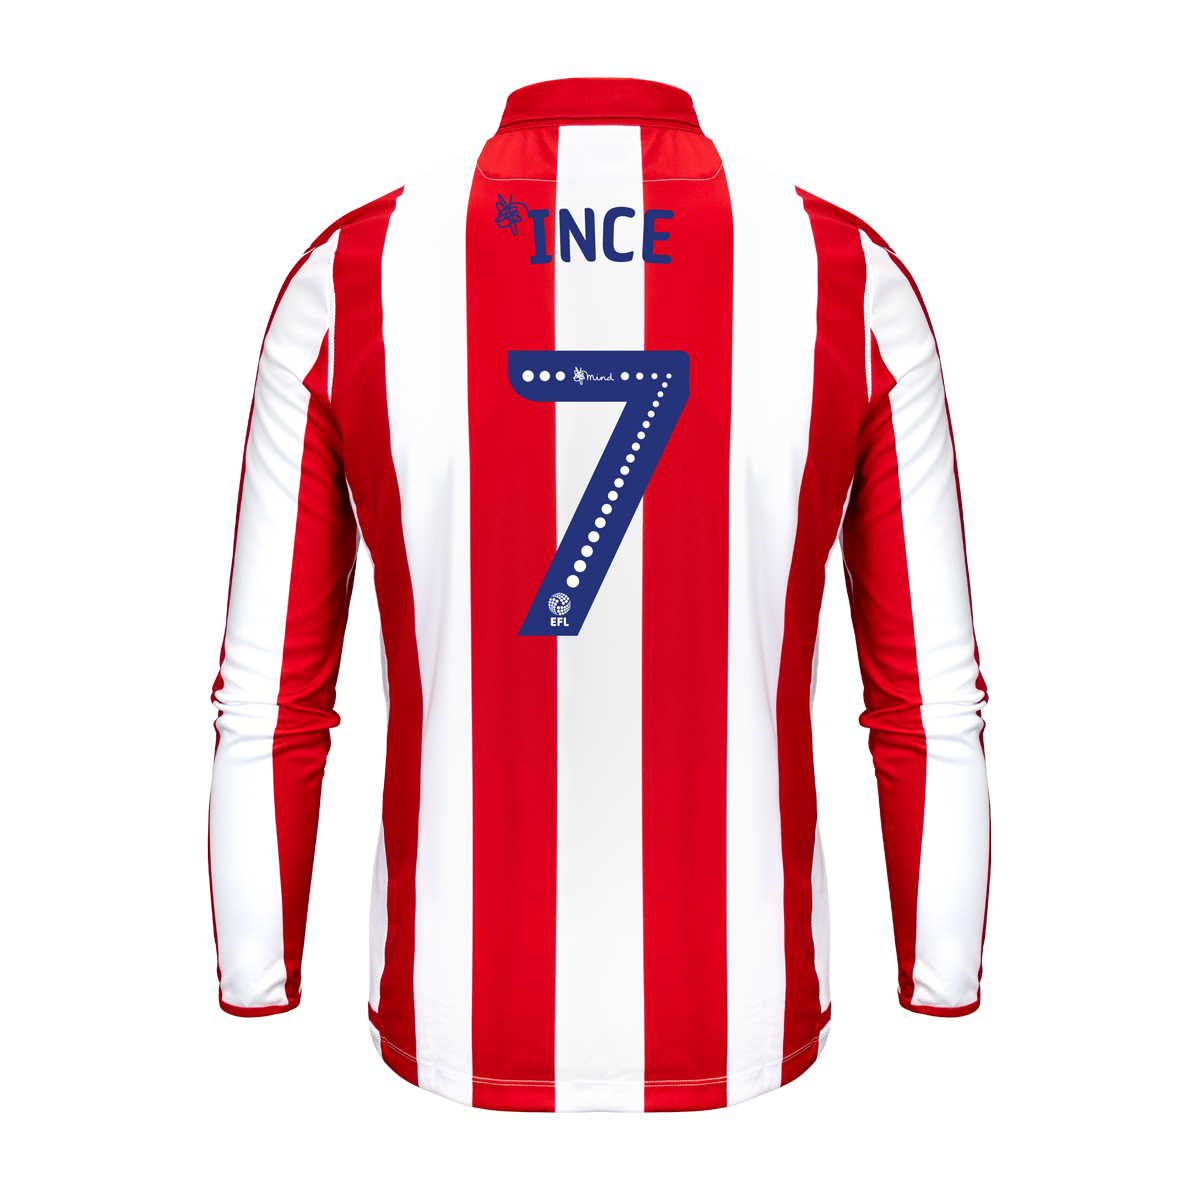 2019/20 Adult Home LS Shirt - Ince